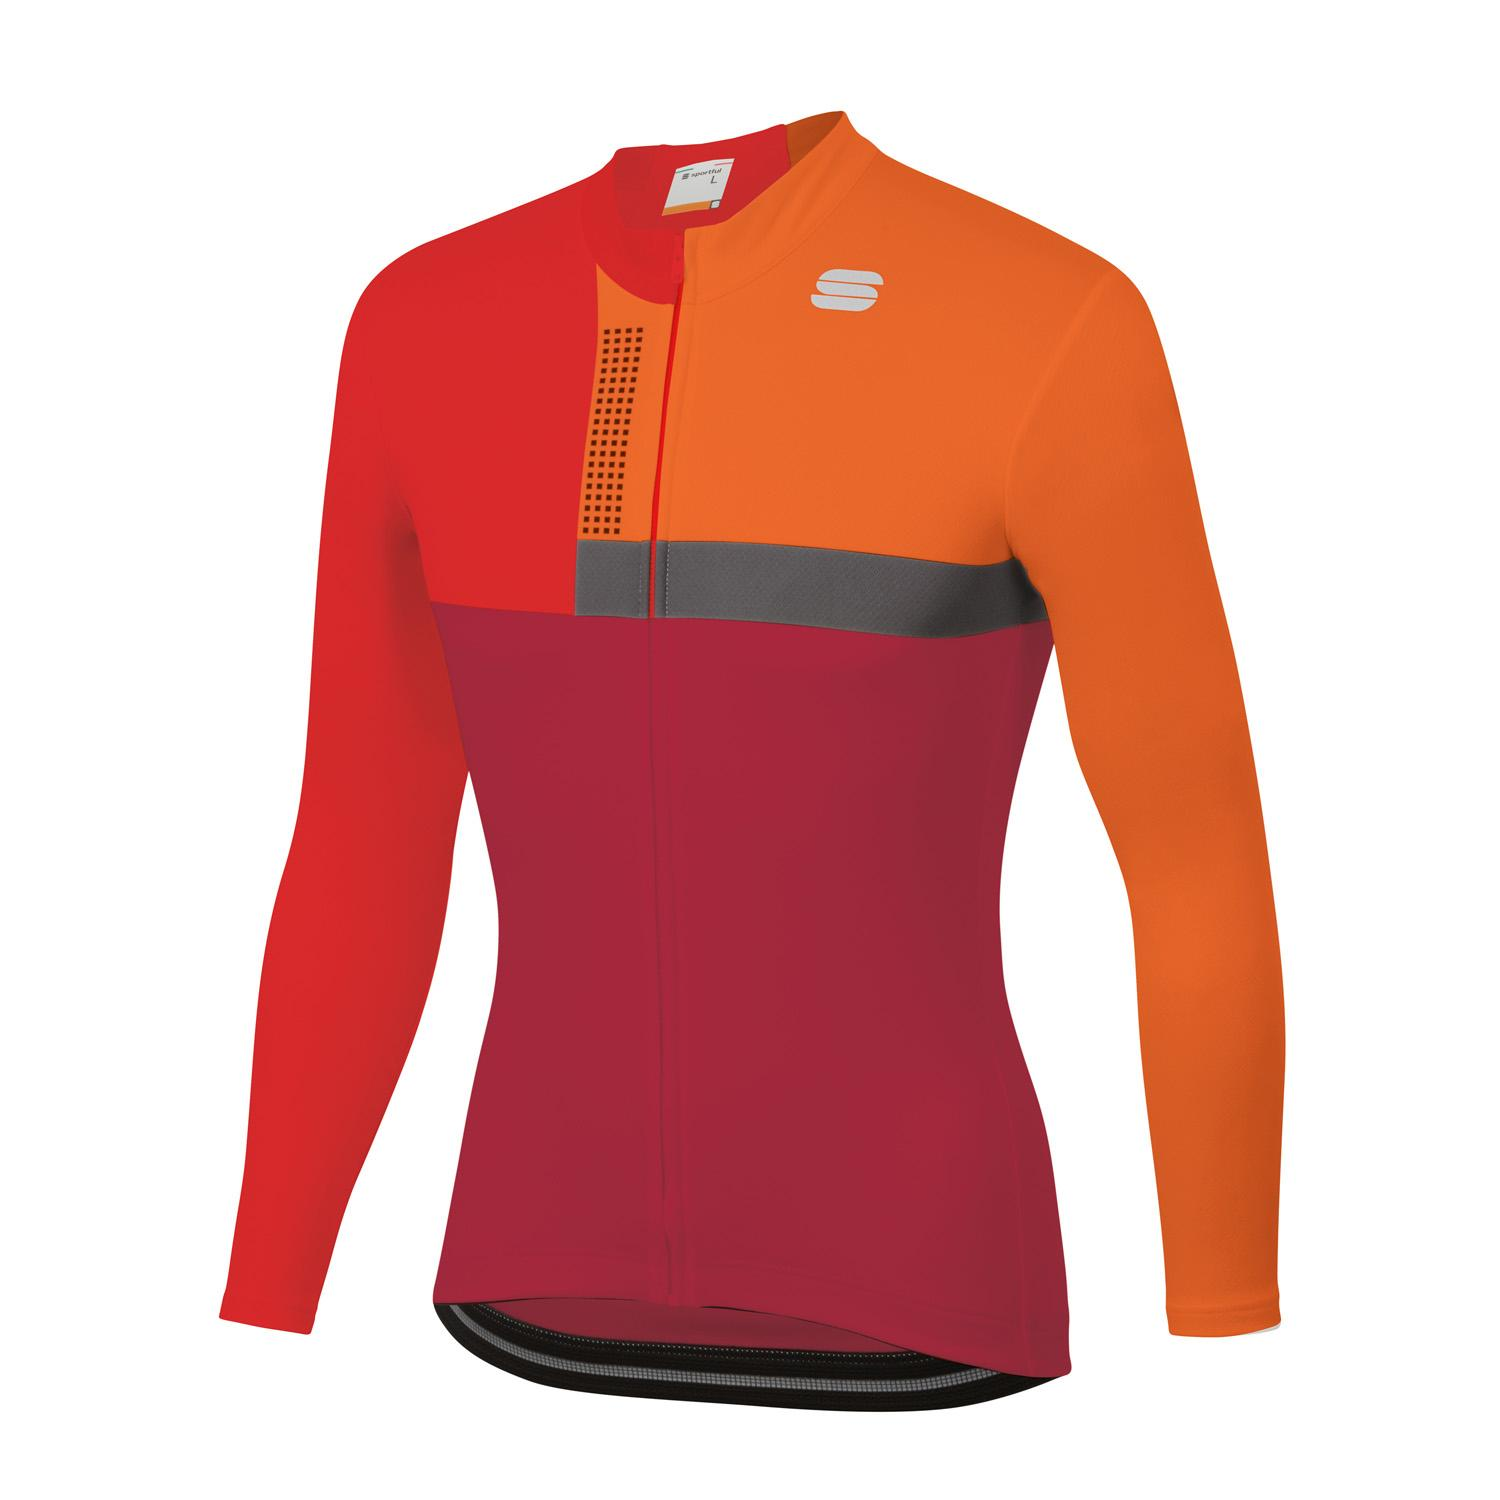 Sportful Fietsshirt lange mouwen Heren Rood Anthraciet - BOLD THERMAL JERSEY RED RUMBA ANTHRACITE